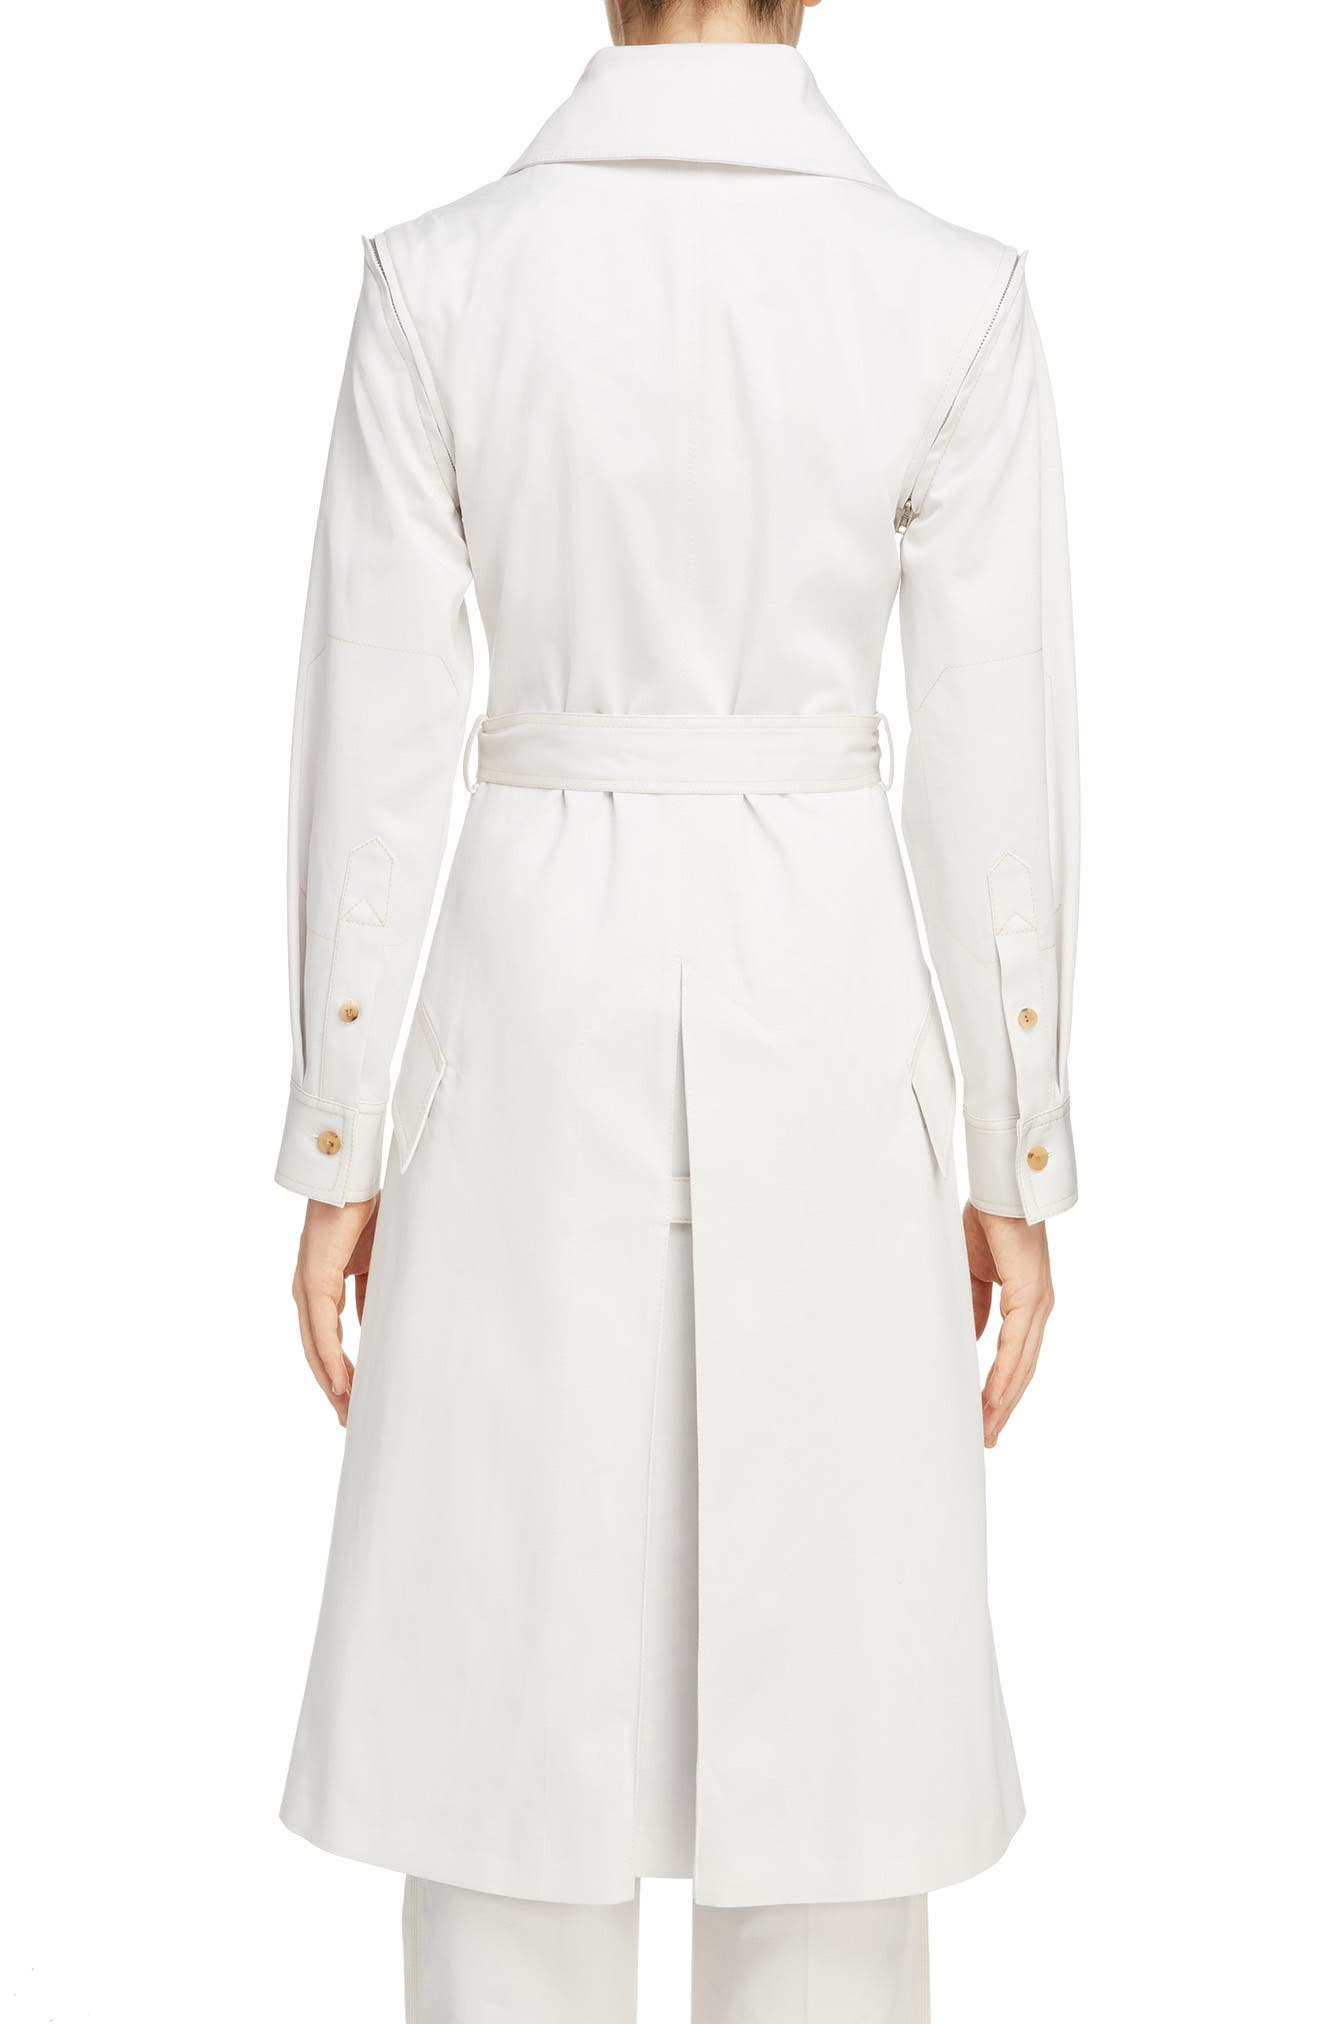 Olesia Removable Sleeve Belted Coat,                             Alternate thumbnail 2, color,                             Dirty White